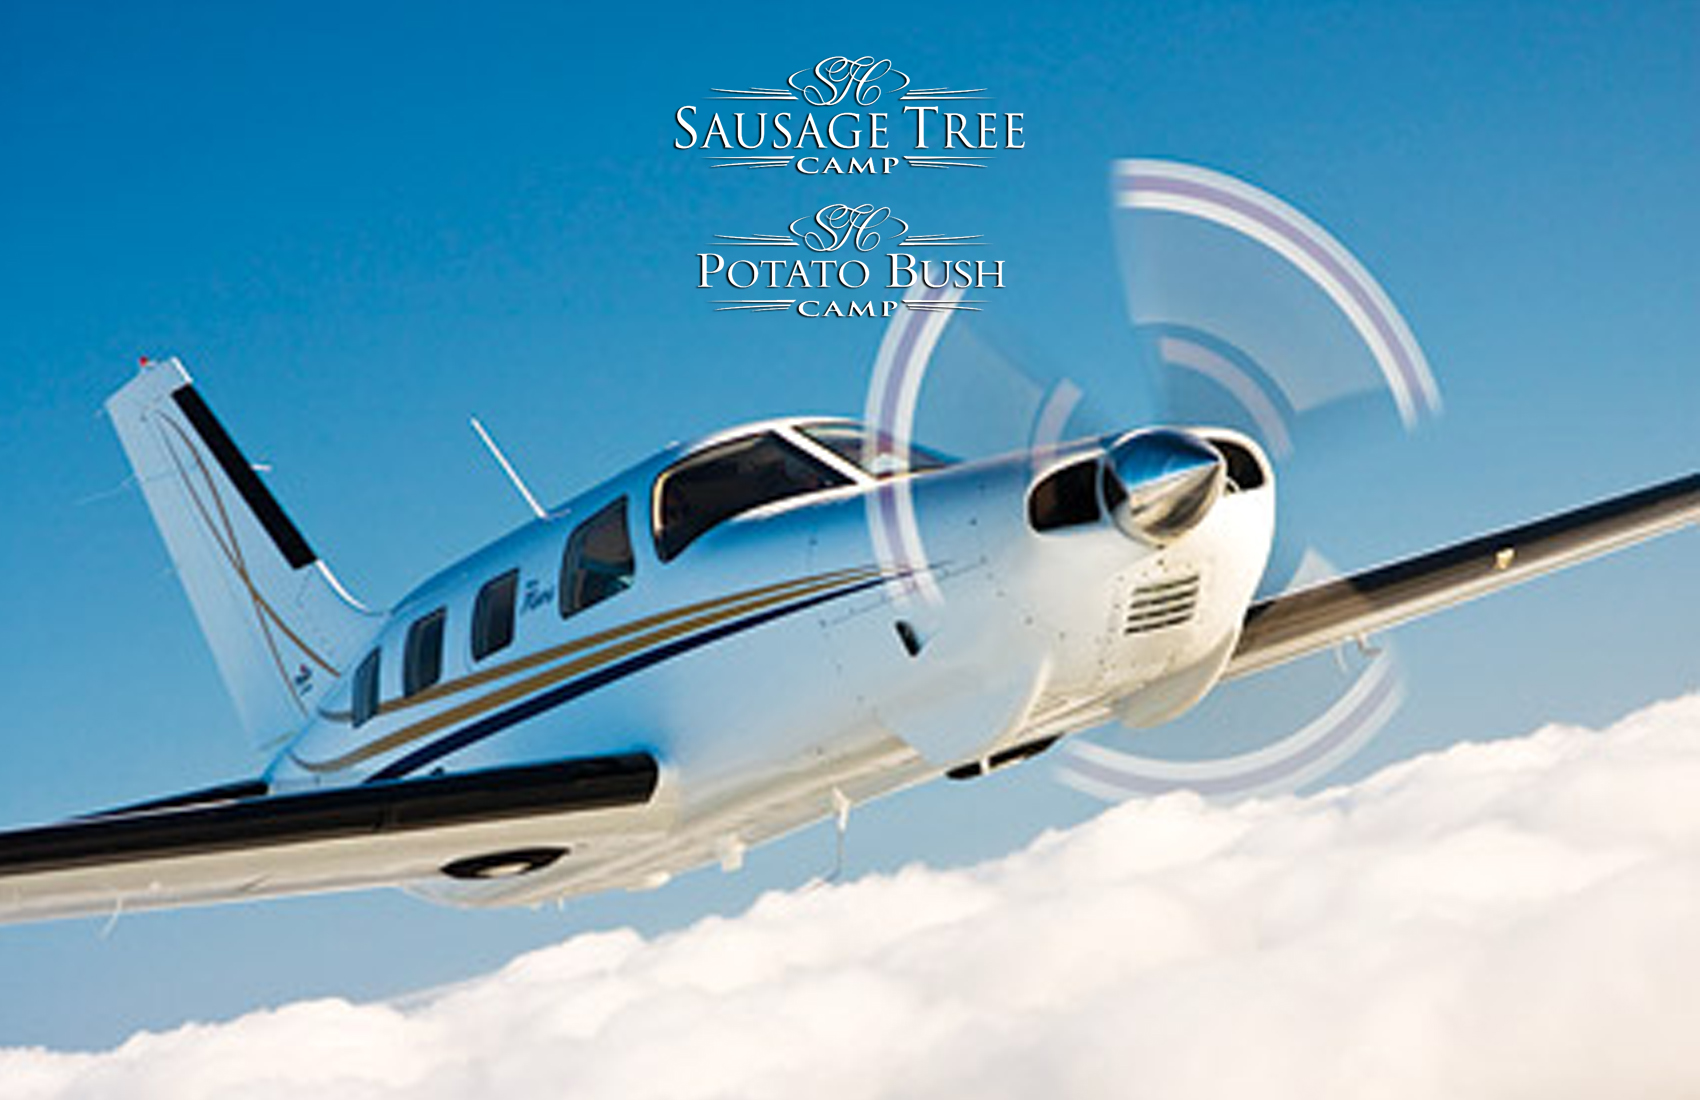 Sausage_Tree_Free_Flight-Specials-Product-Page